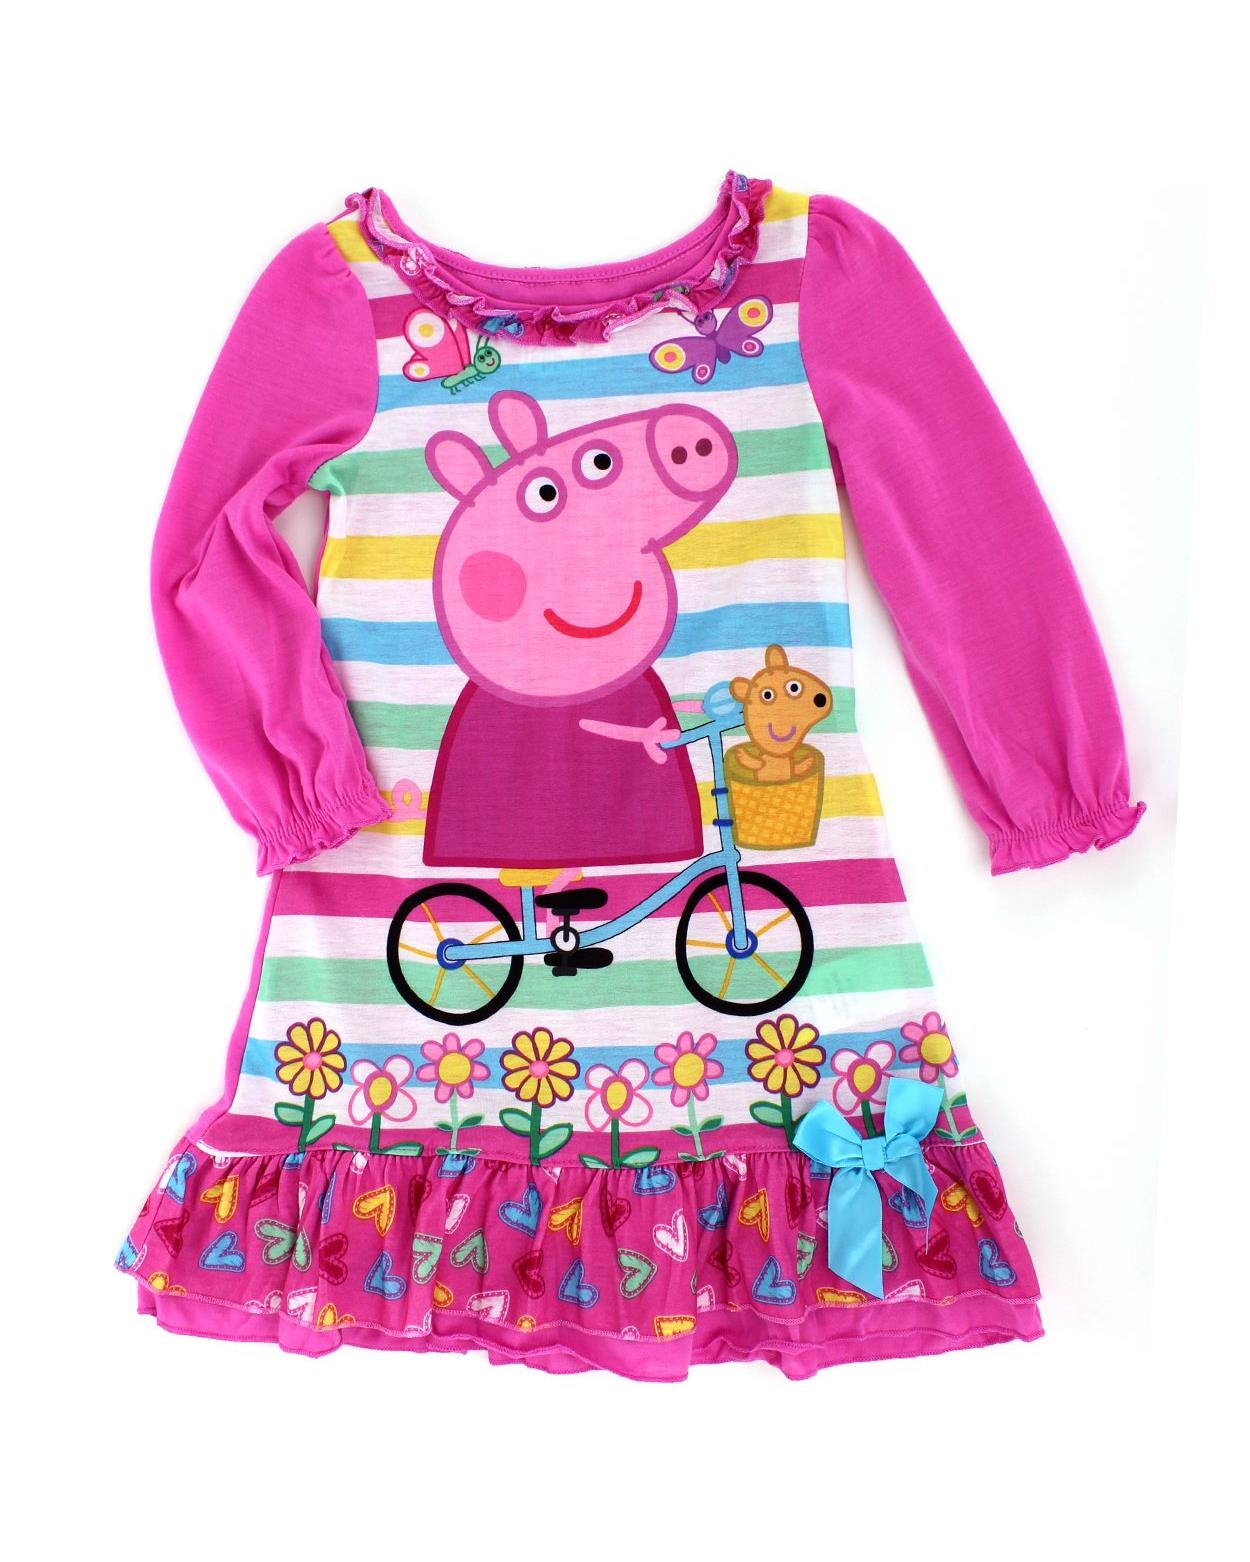 Peppa Pig Toddler Poly Nightgown Pajamas, Pink/Multi, Size: 4T